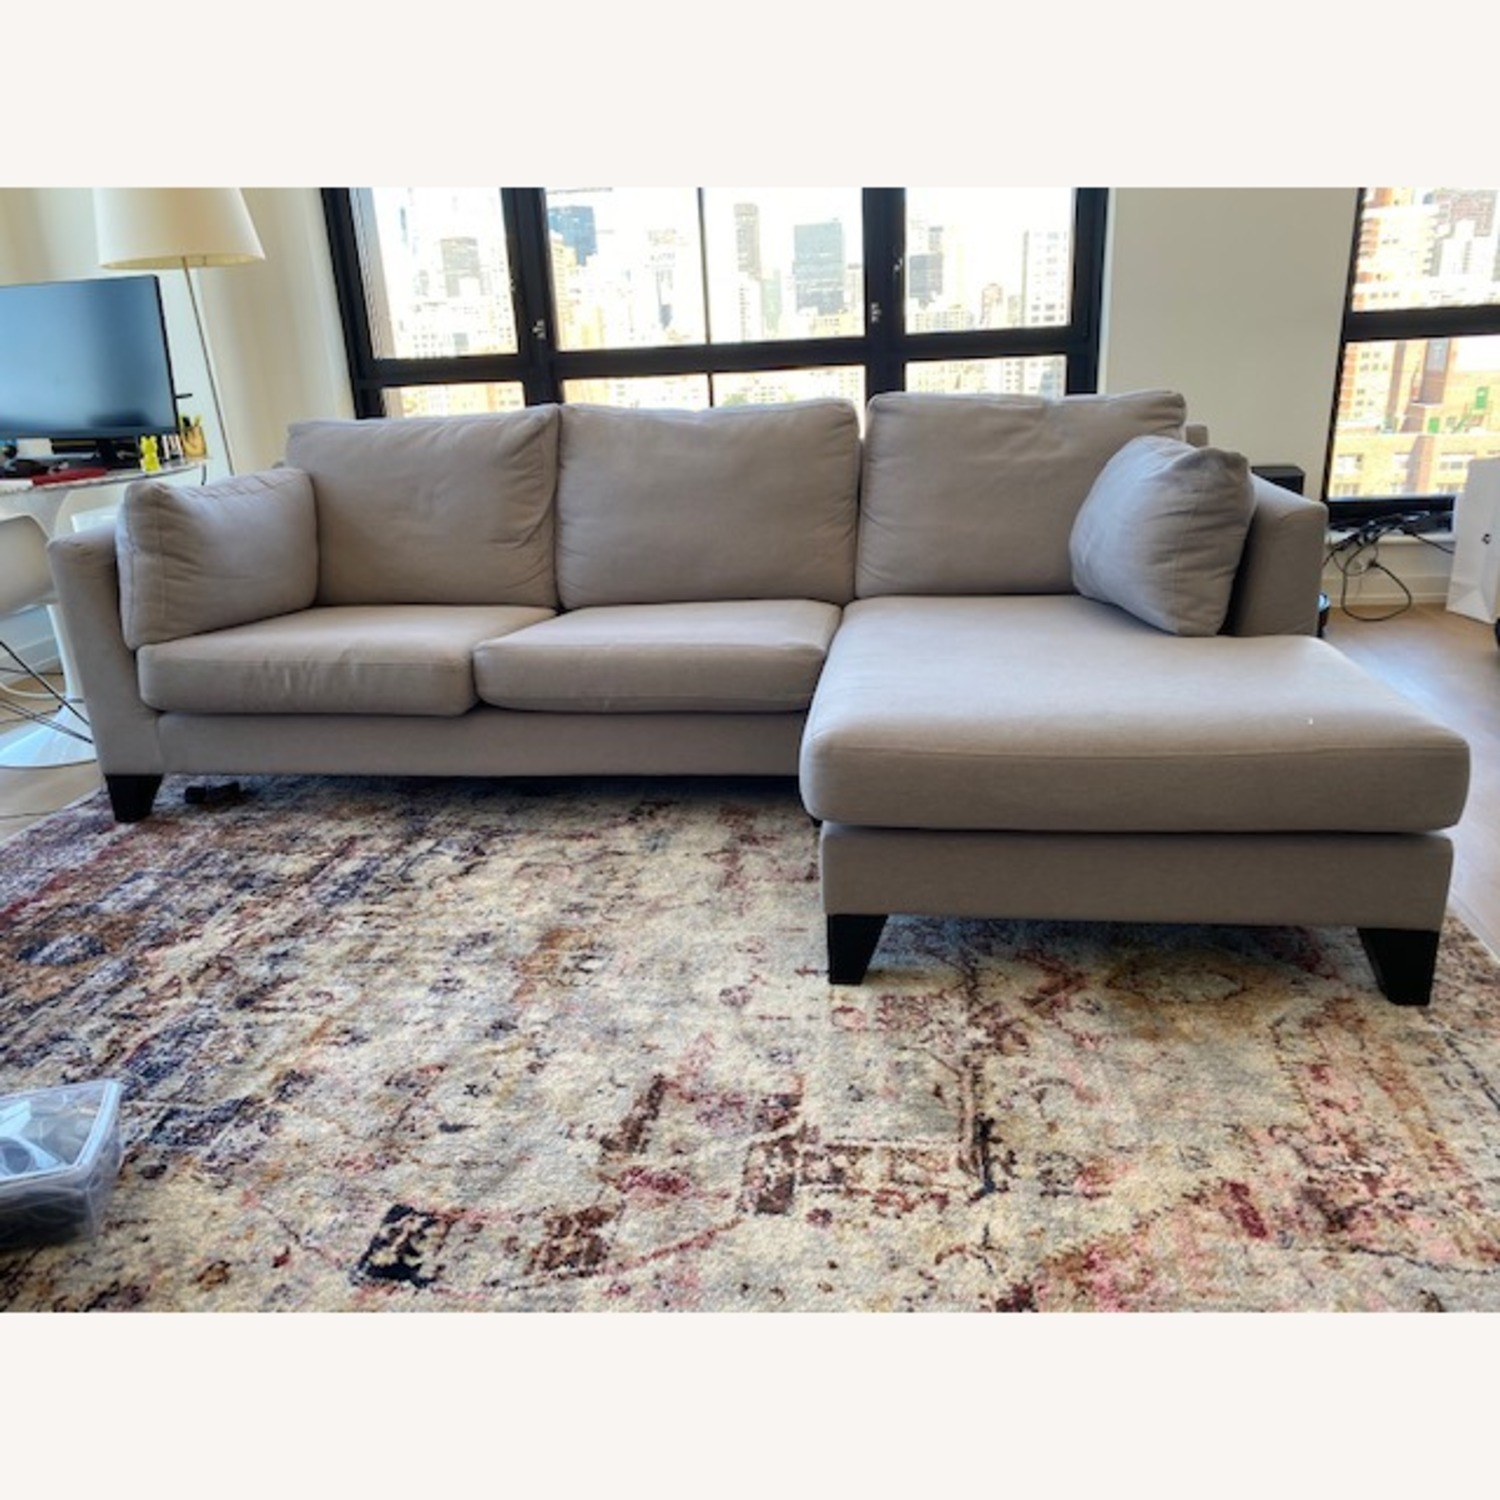 One Deko London Chaise Sectional - image-1